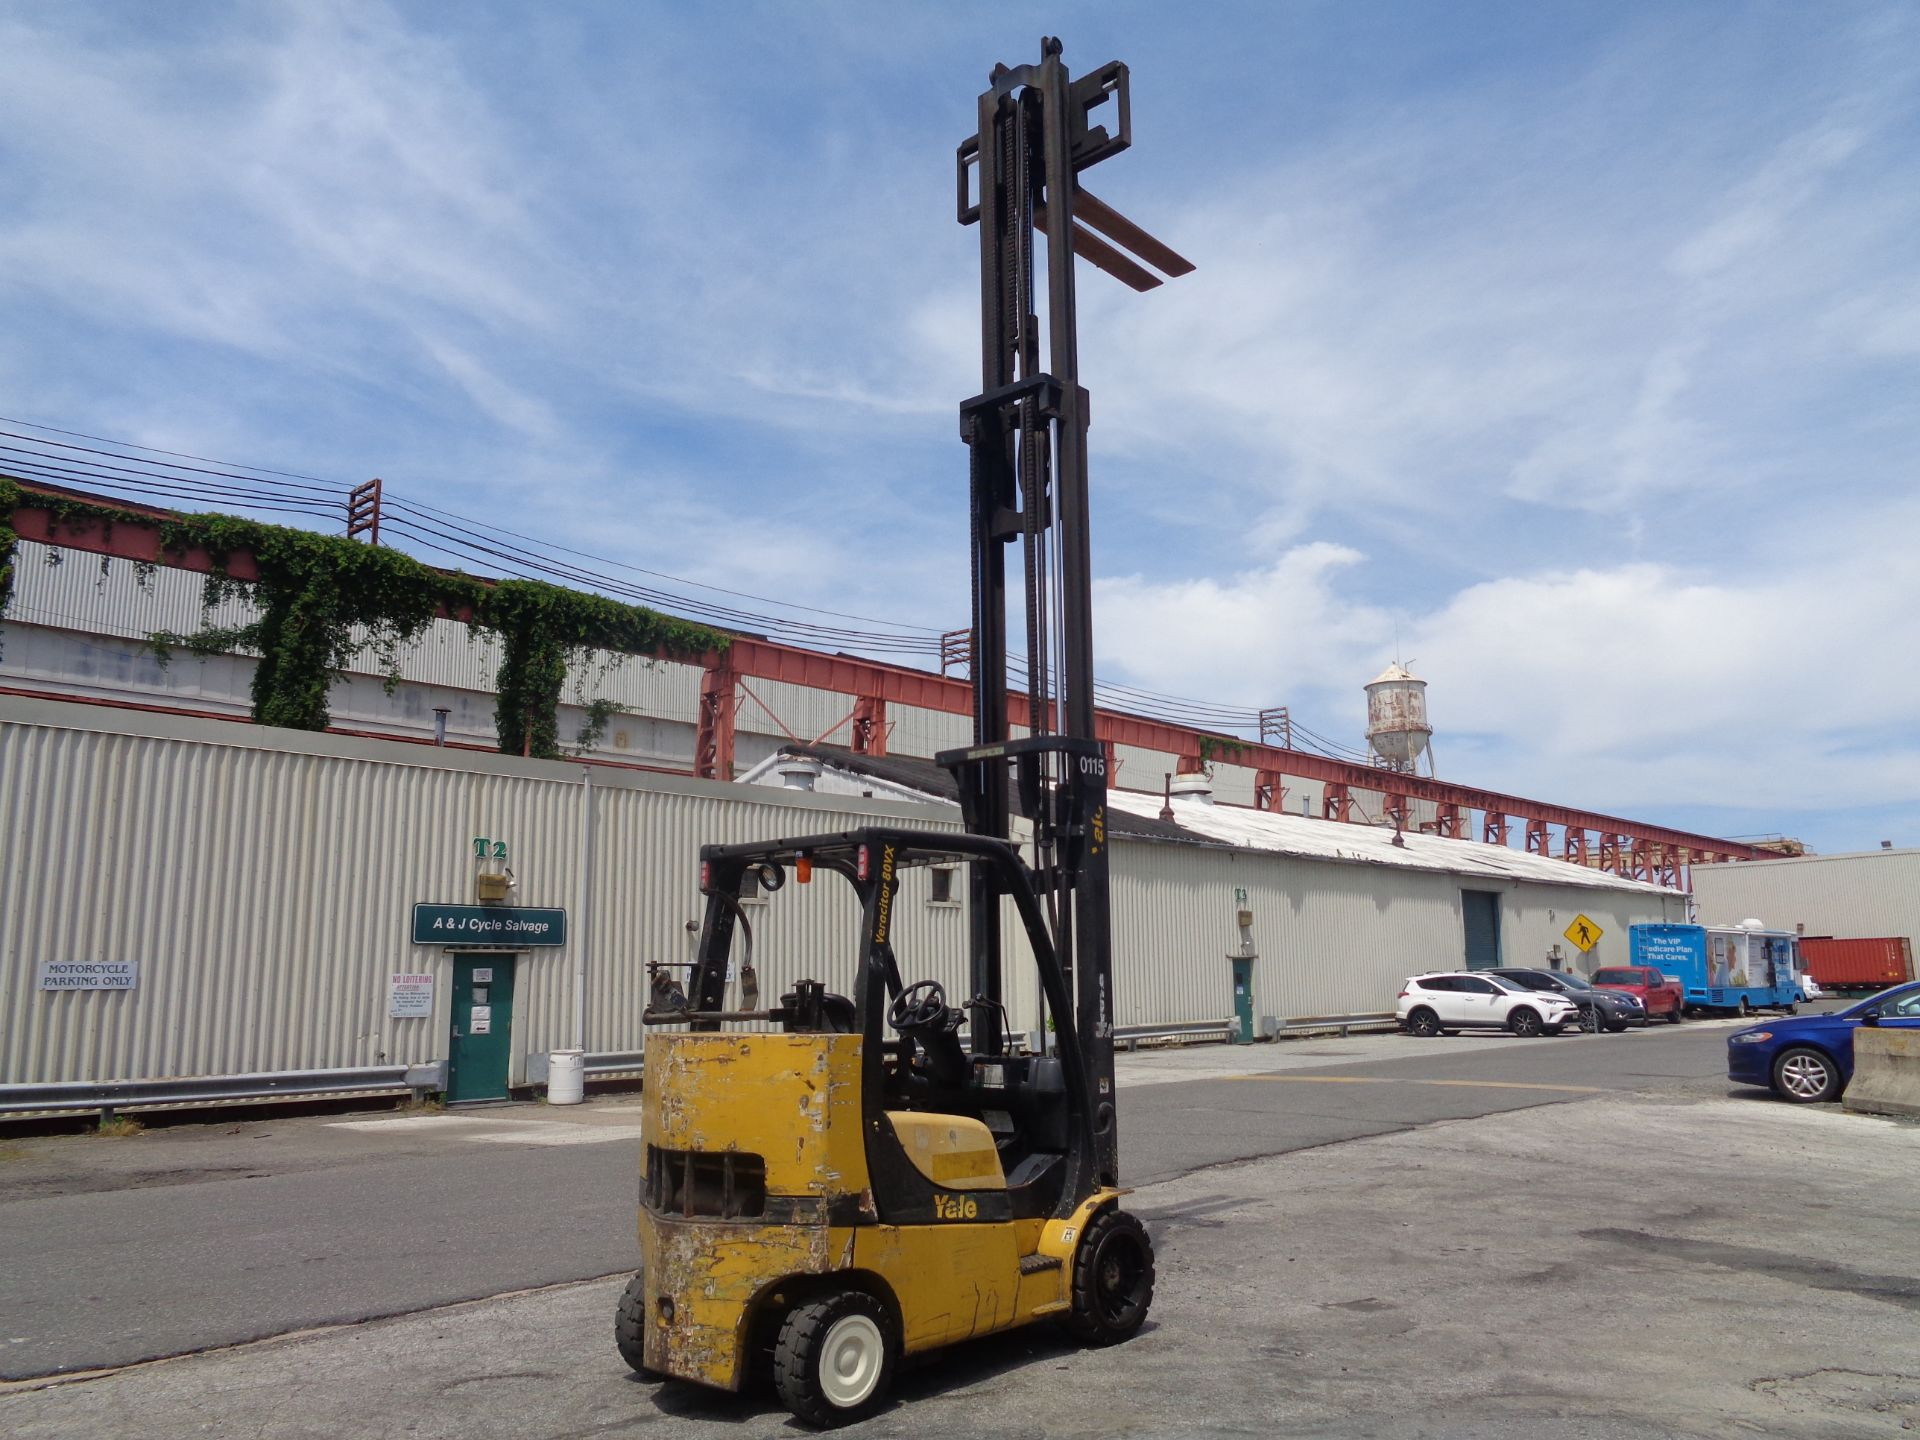 Yale GC080VXNGSE107.6 8,000lb Forklift - Image 12 of 18